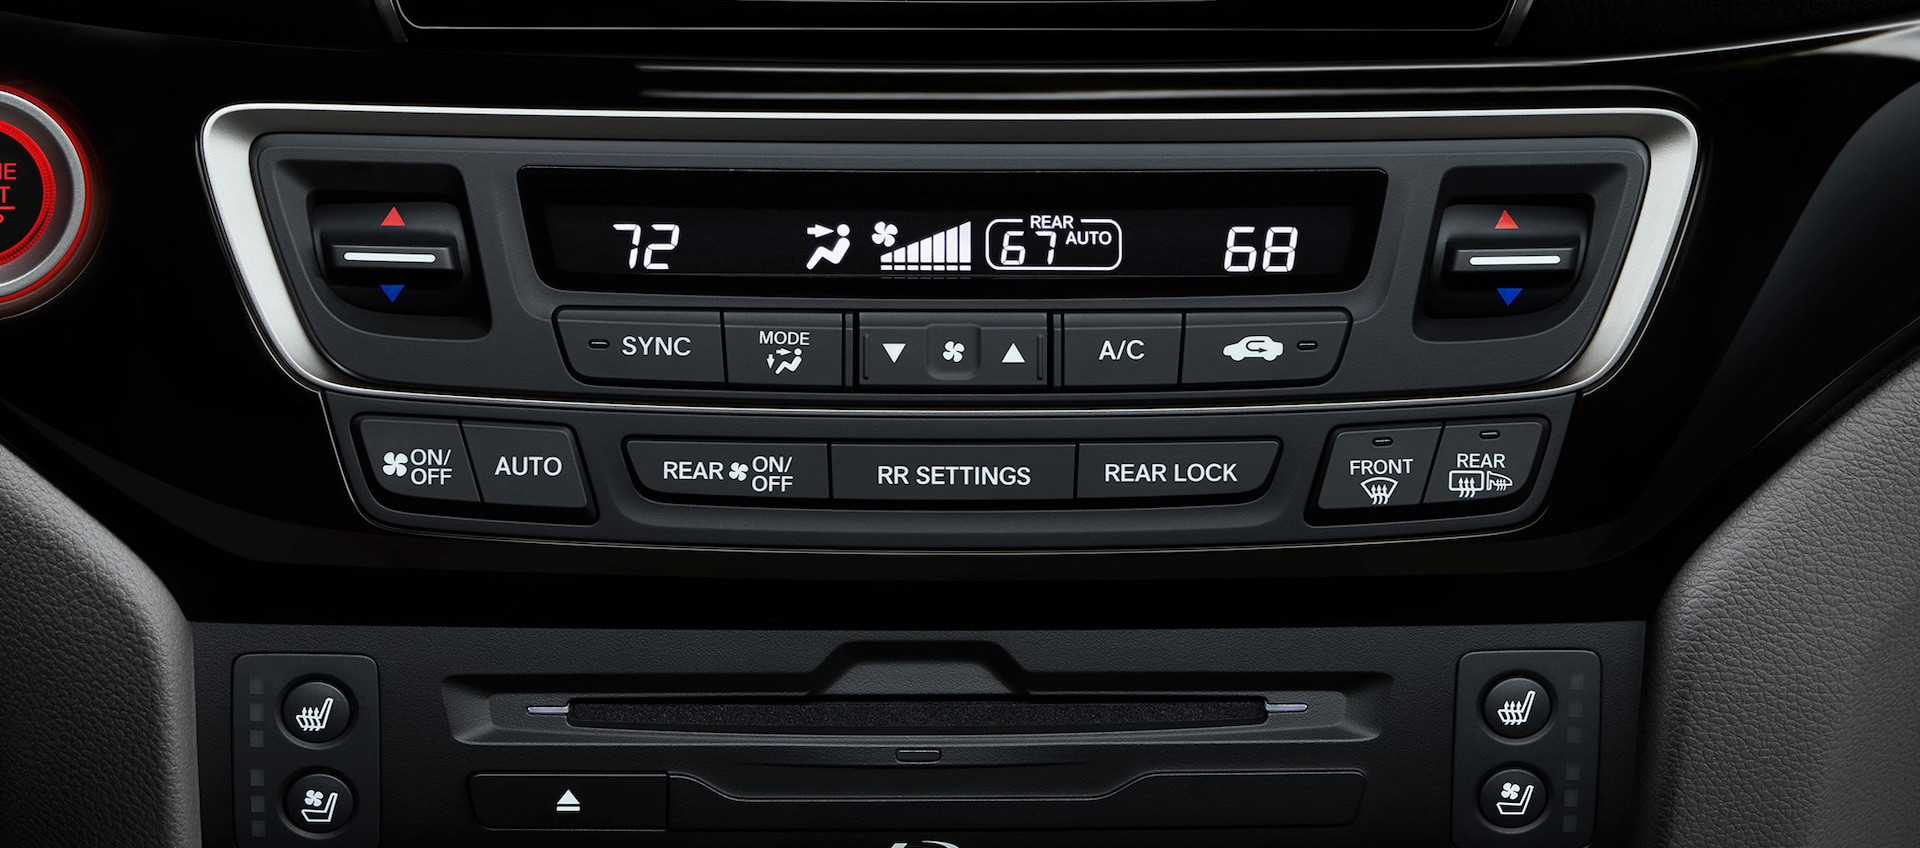 Climate Control in the 2020 Honda Pilot